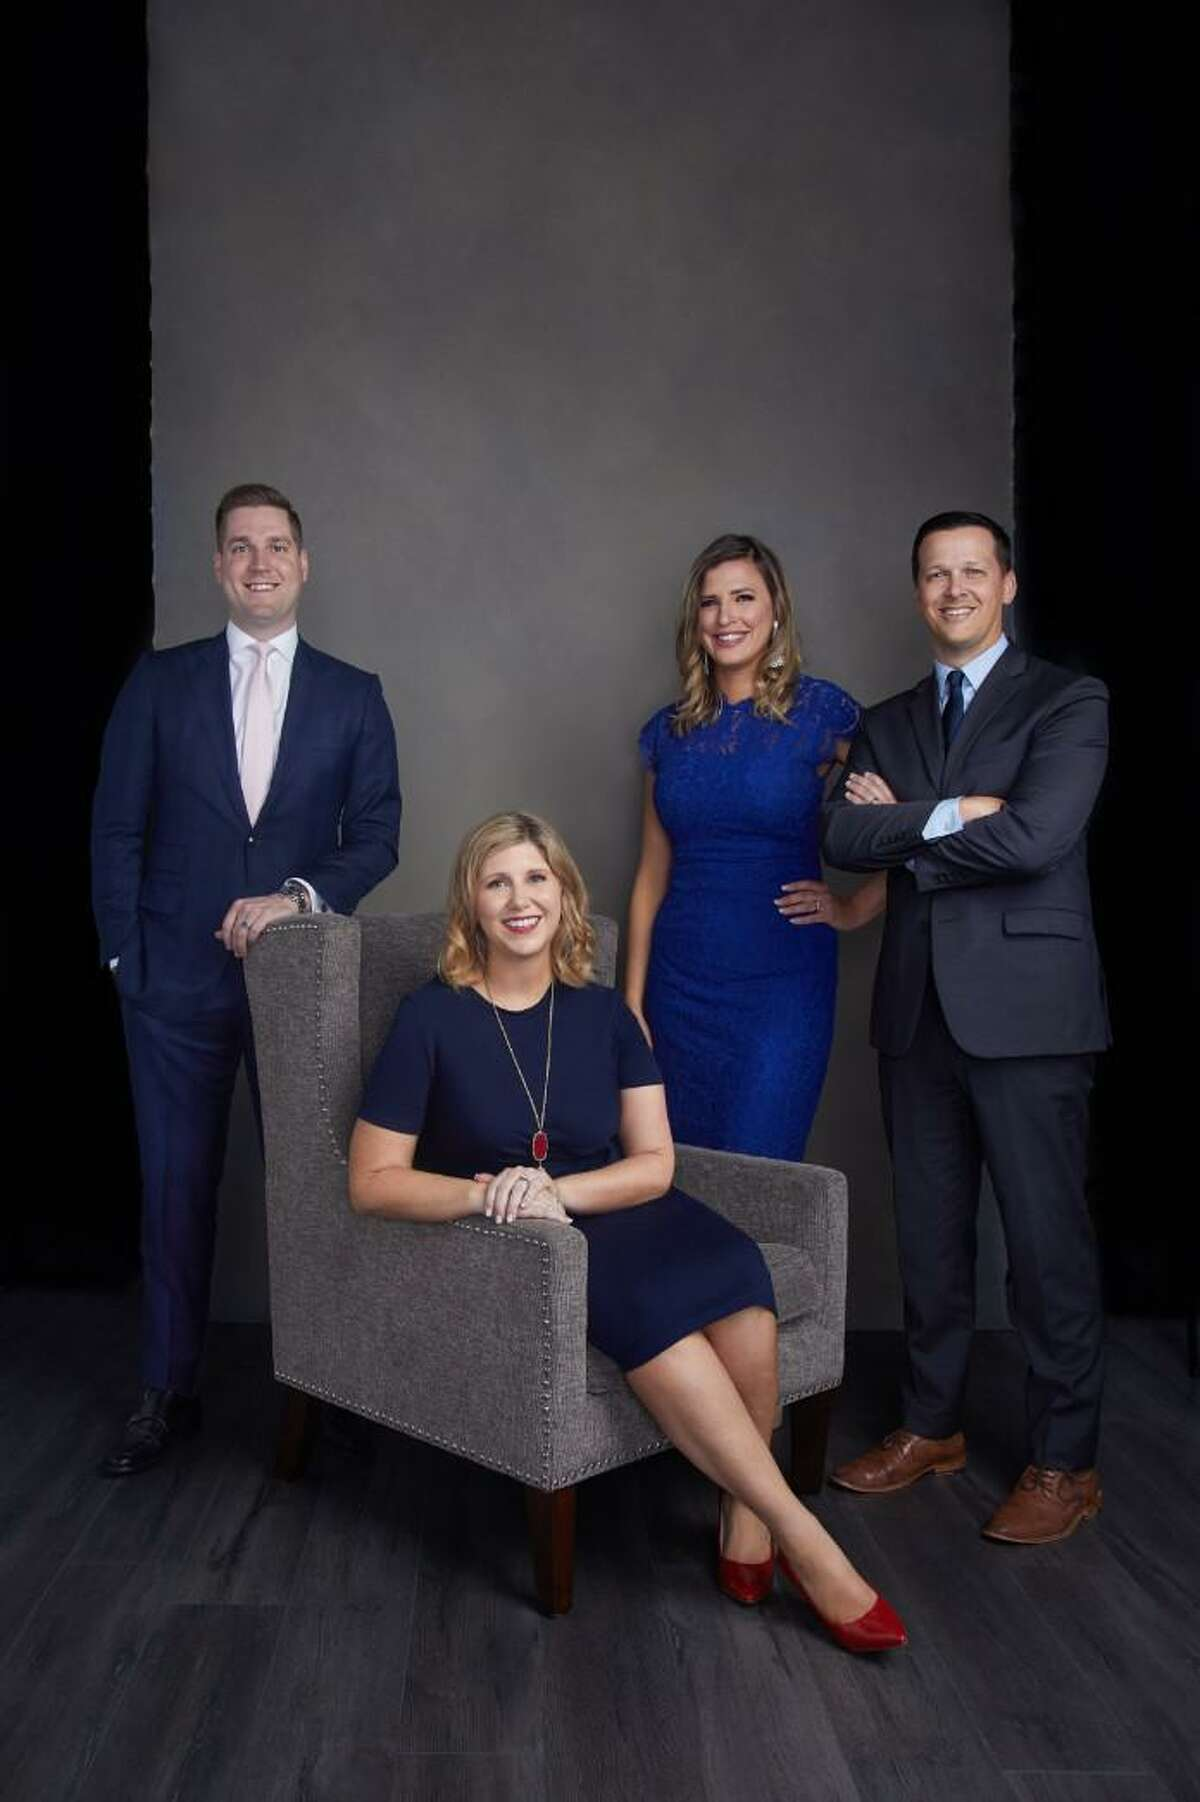 Partnership Lake Houston has announced their four under 40 business leaders for the community and will be honoring them with a luncheon on July 20.